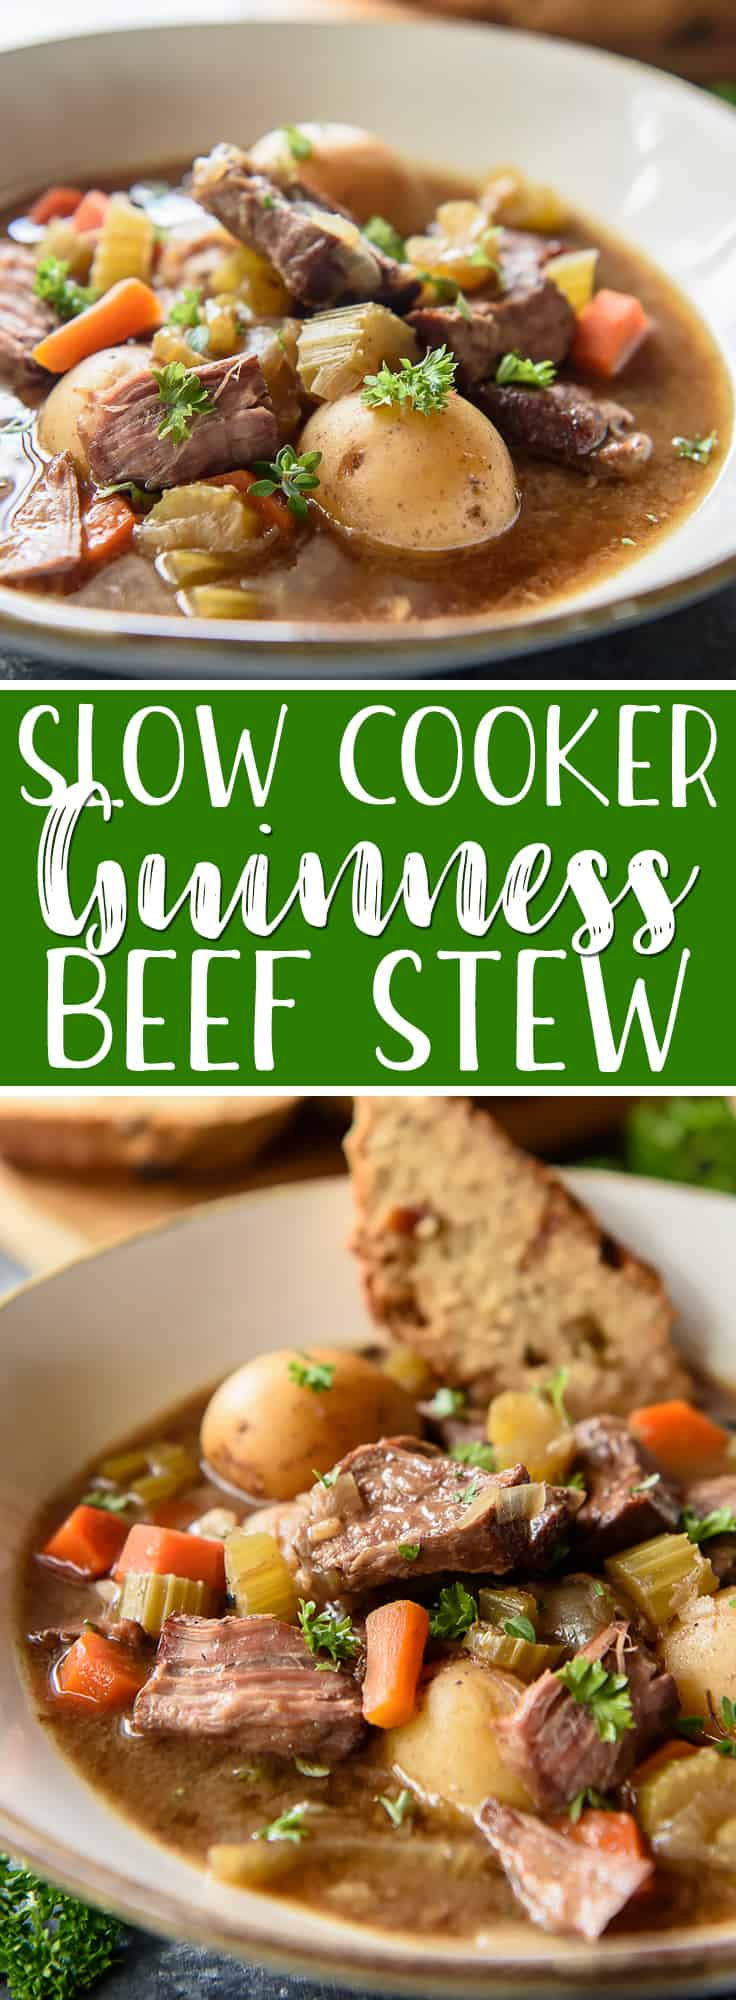 This Slow Cooker Irish Guinness Beef Stew is the perfectmeal tocelebrate St. Patrick's Day, but it's just as delightful any day of the year! Juicy beef, Guinness stout, and hearty root vegetables come together in a fabulous set-it-and-forget-it stew that's great on its own, but even better served with Irish soda bread.